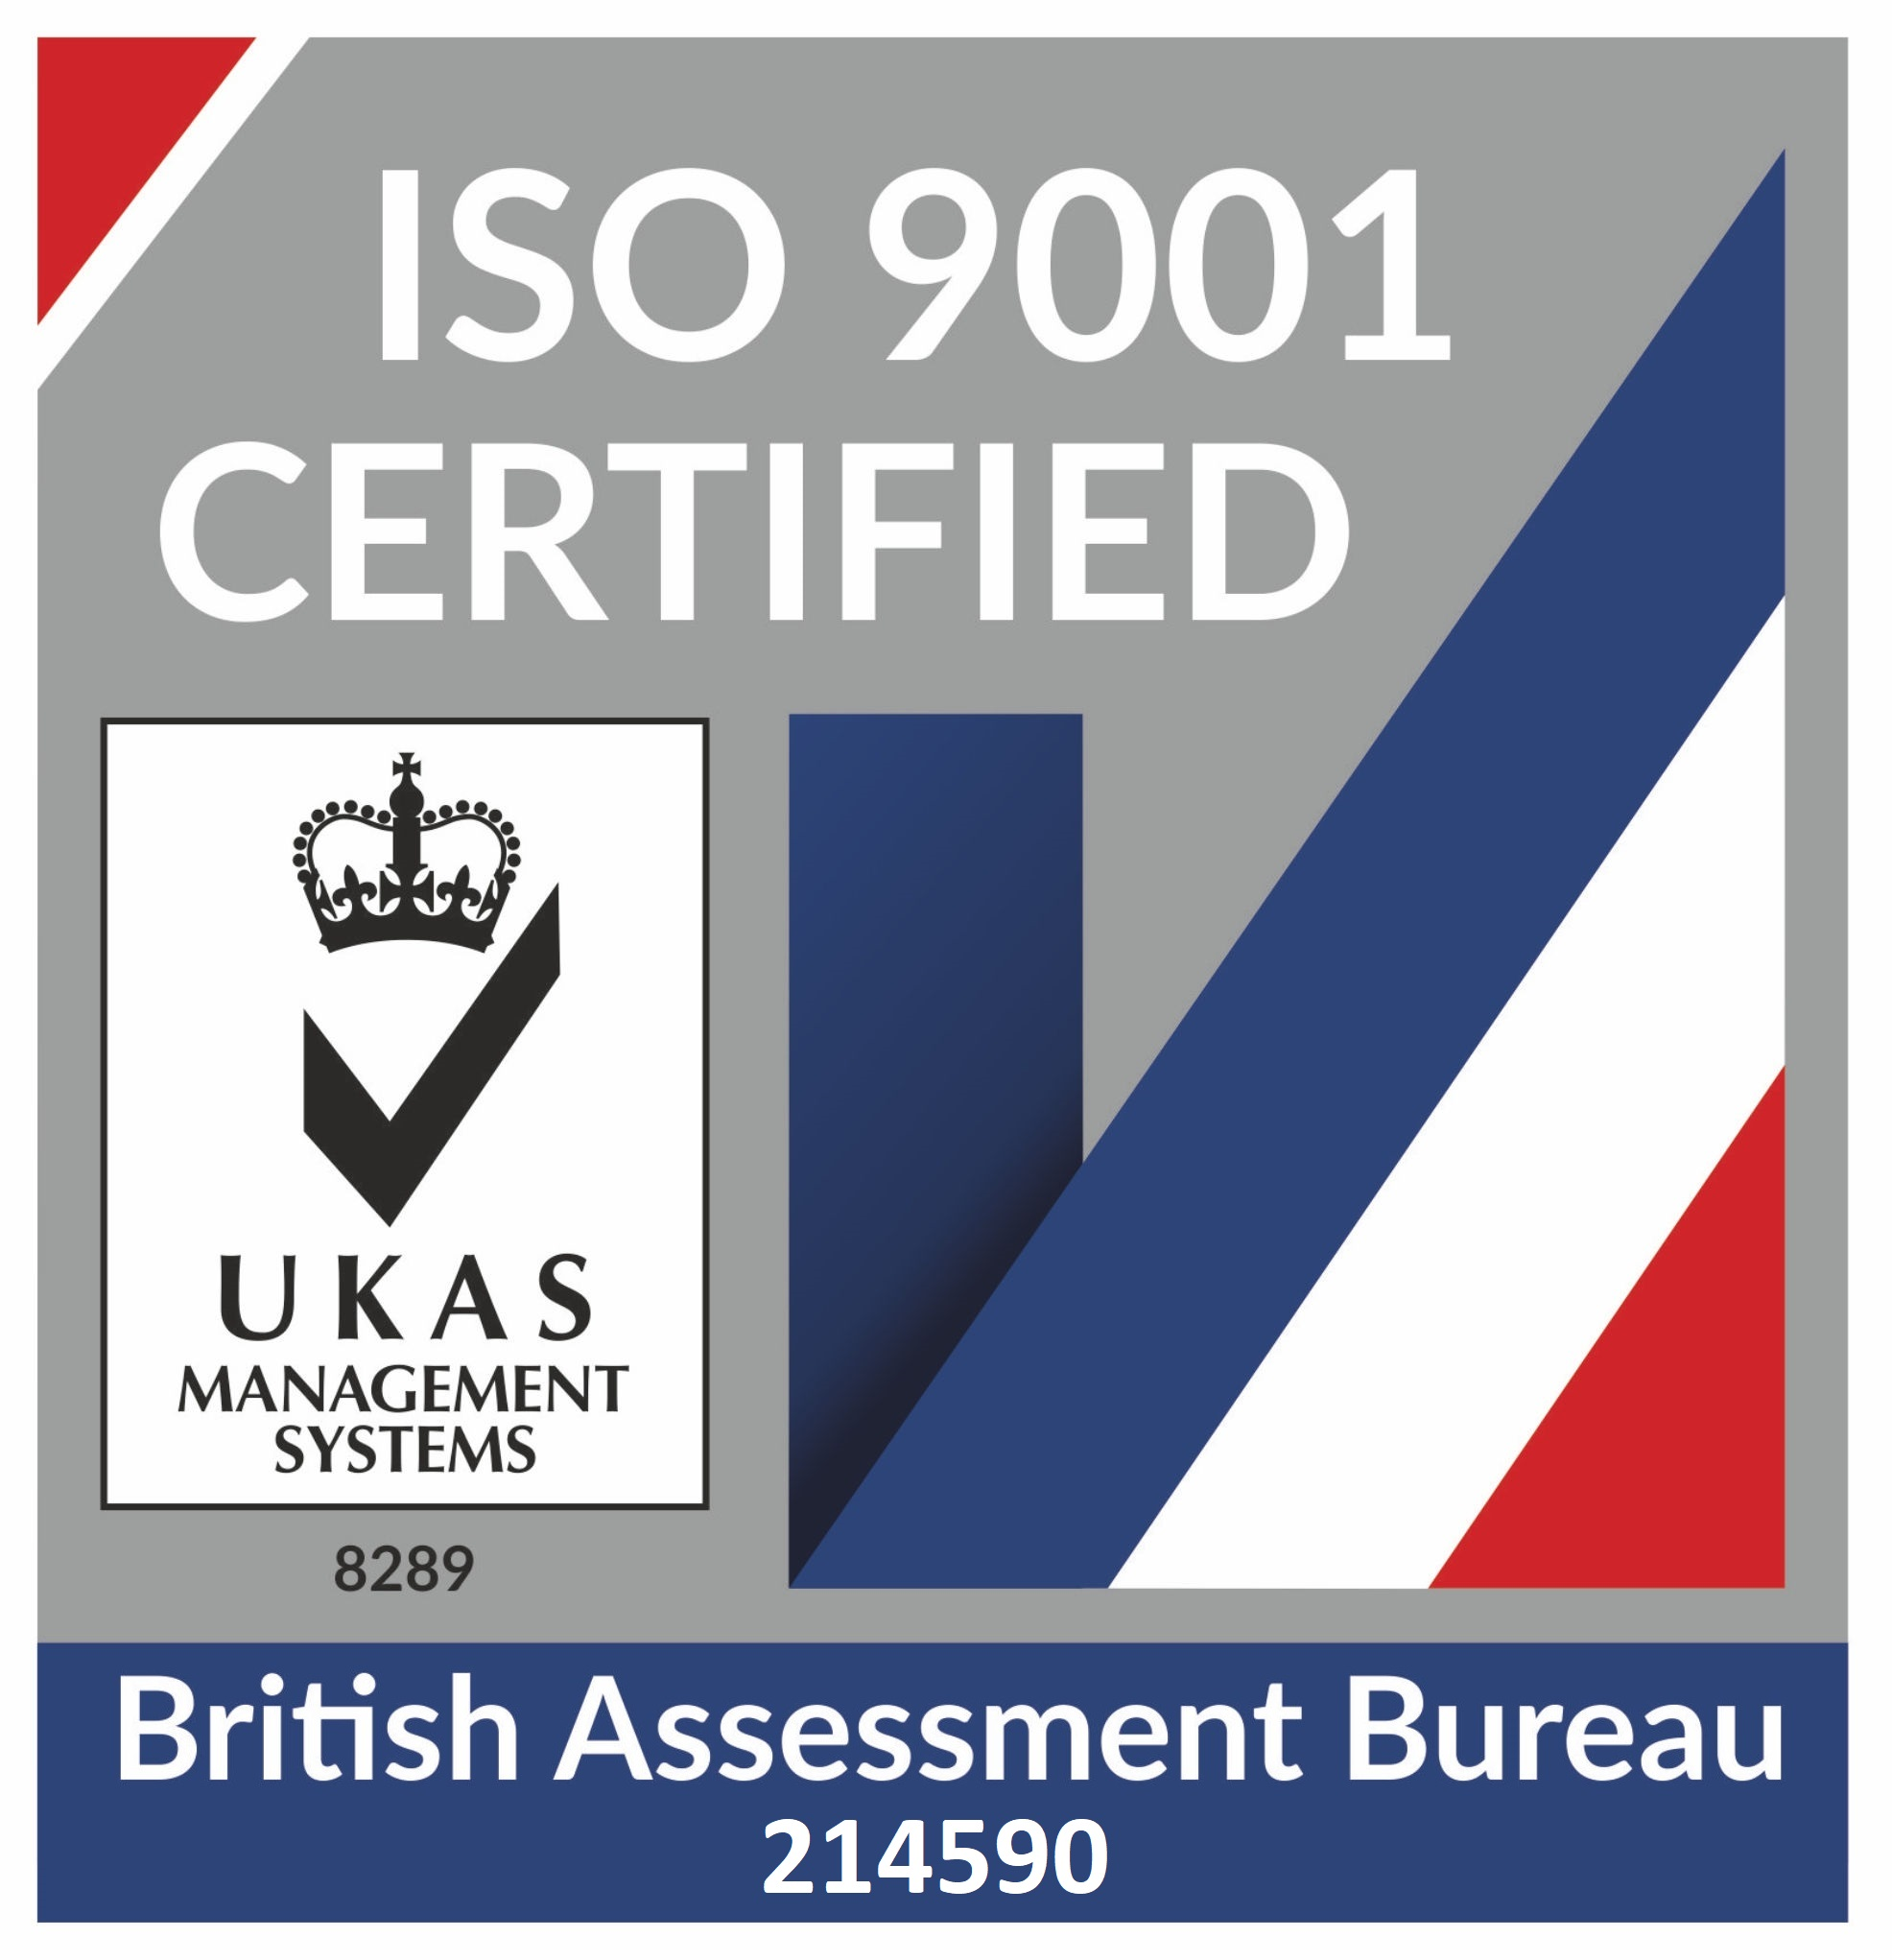 Iso certified 9001:214590